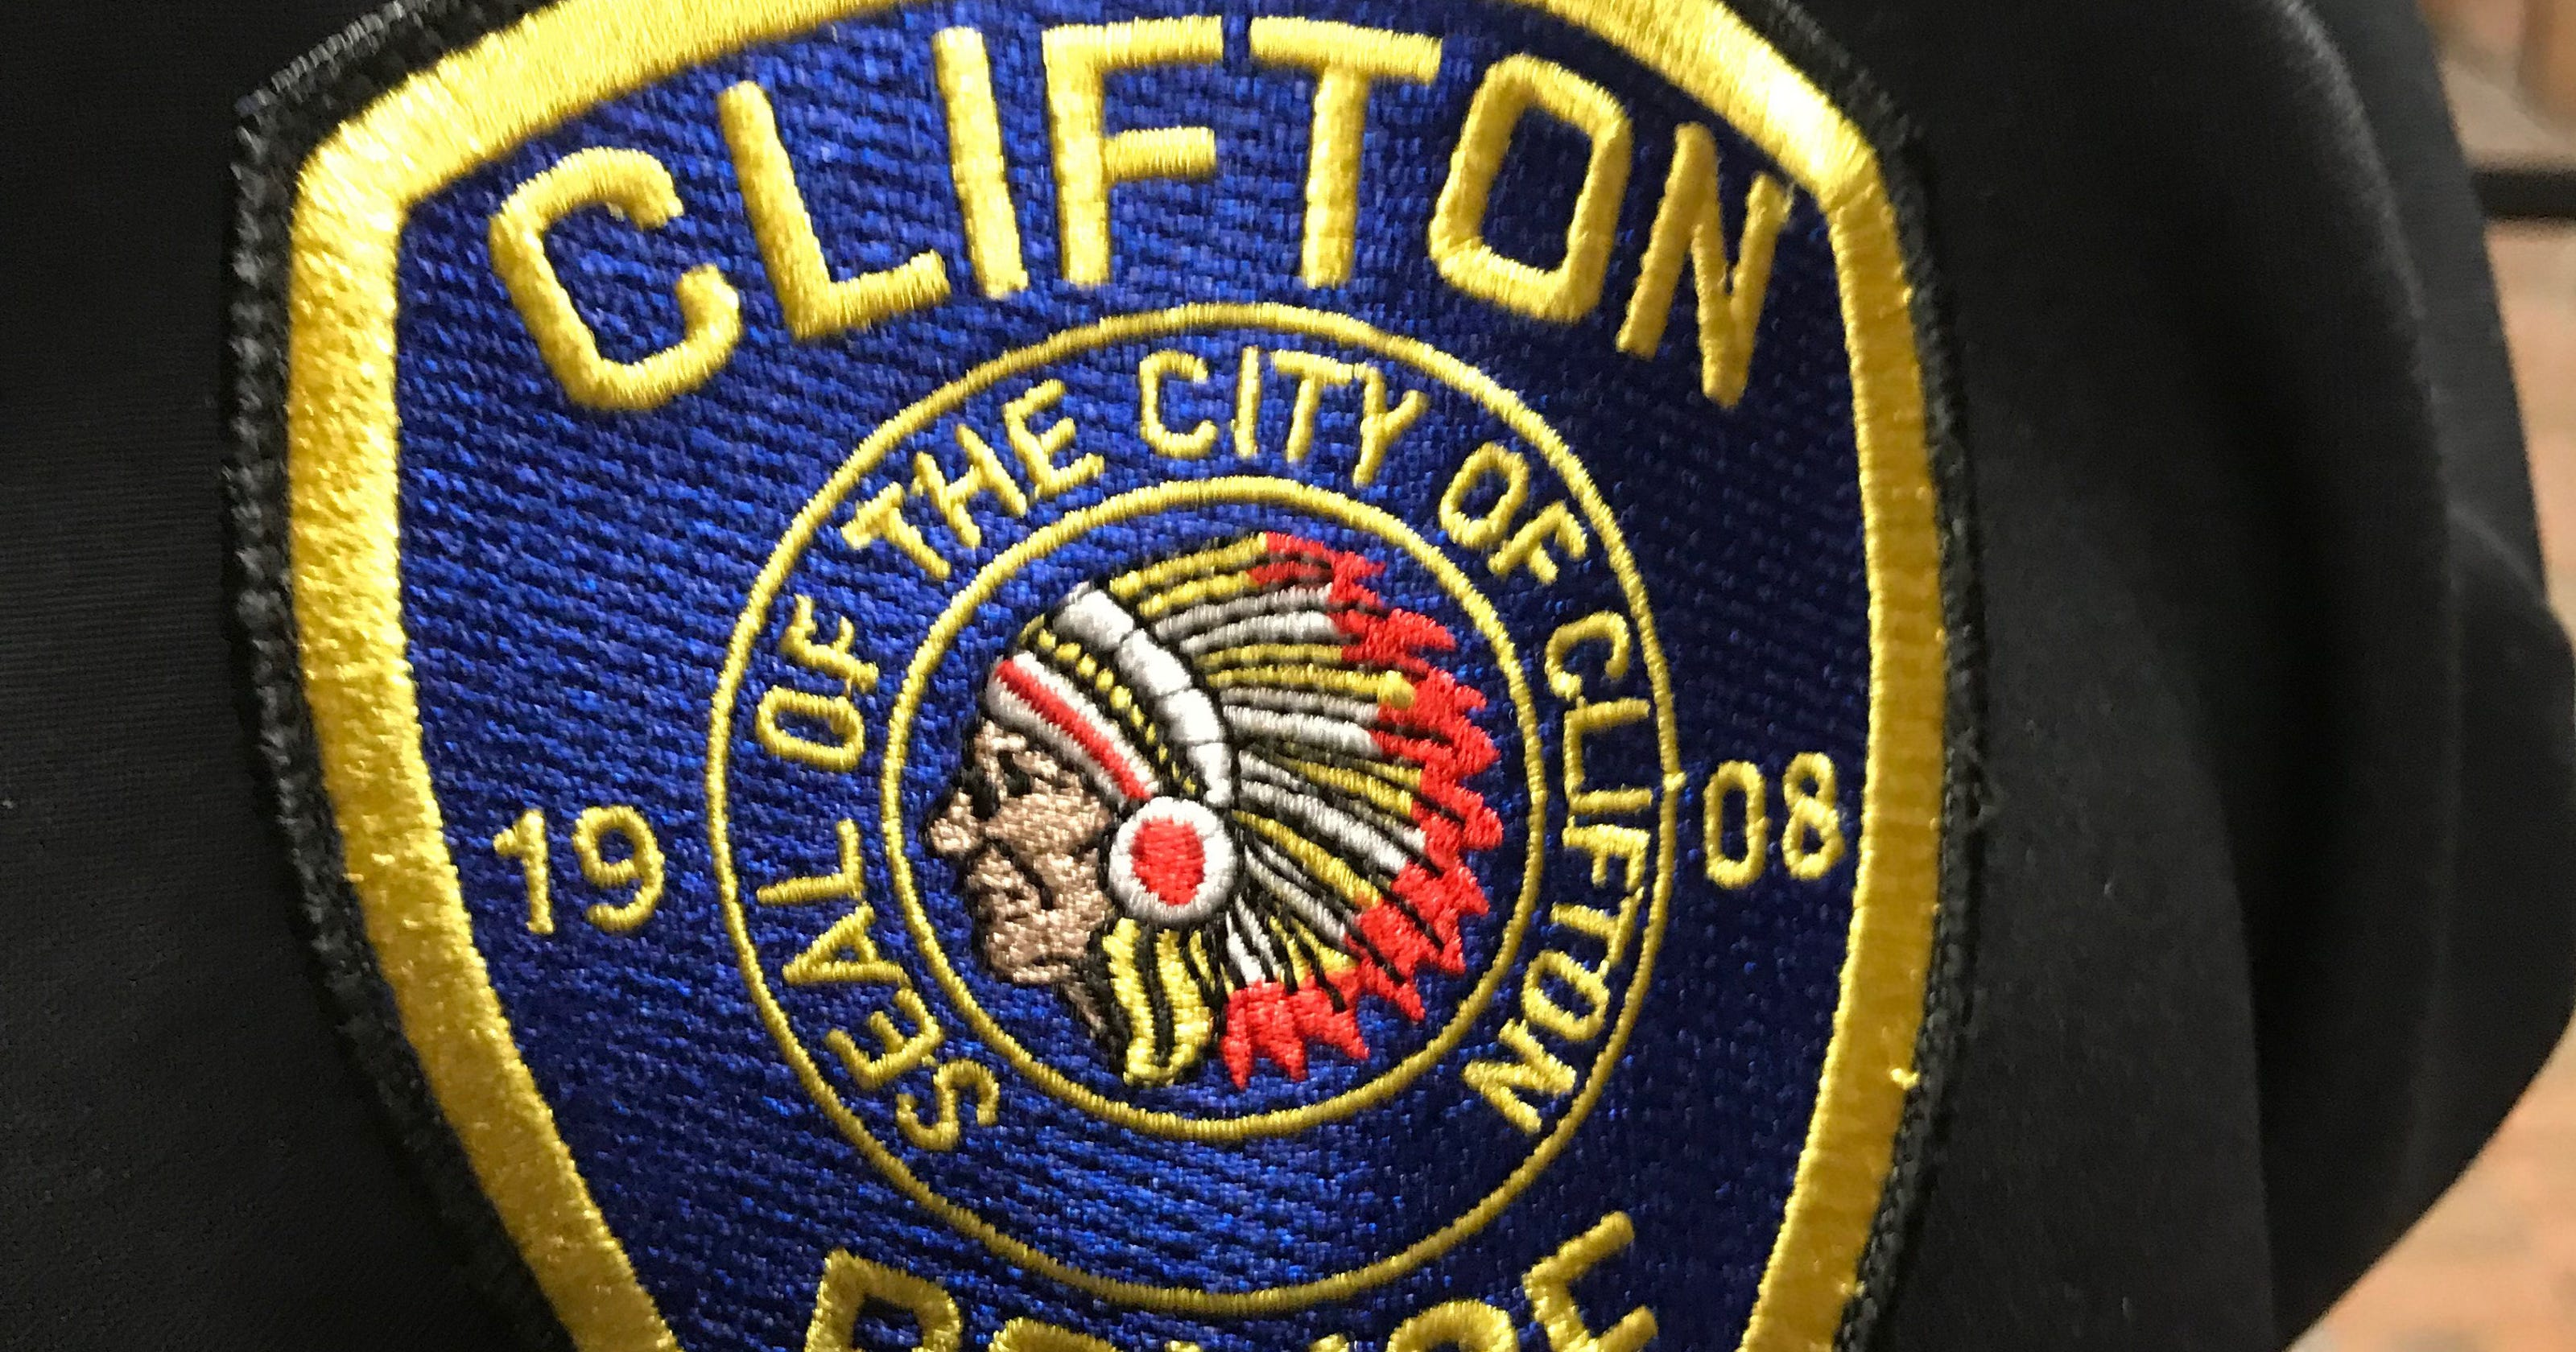 Clifton NJ chief, city harassed cop over military service